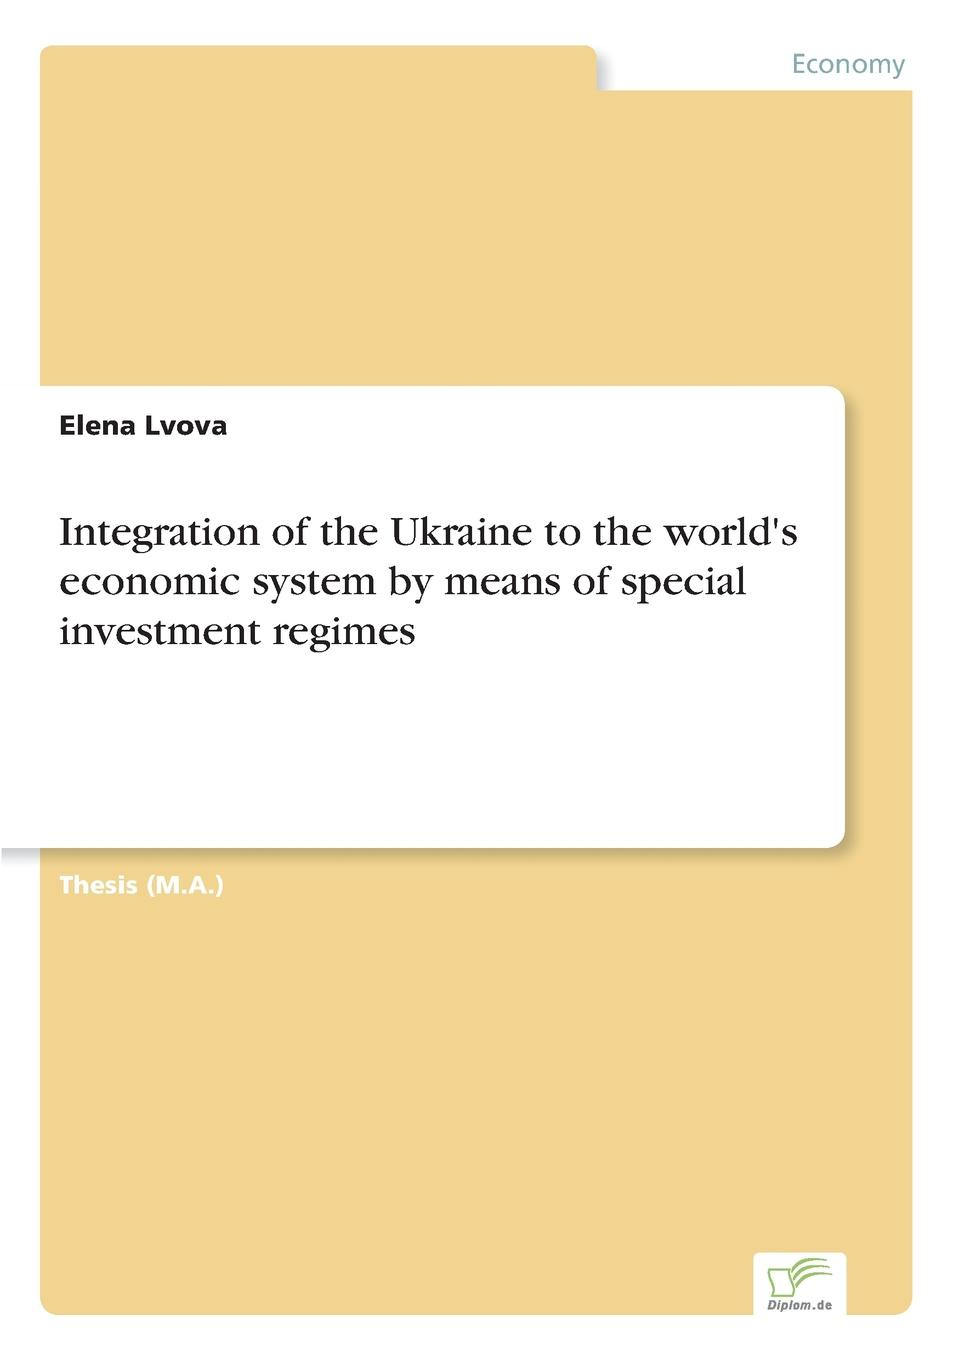 Elena Lvova Integration of the Ukraine to the world.s economic system by means of special investment regimes jerald pinto e quantitative investment analysis